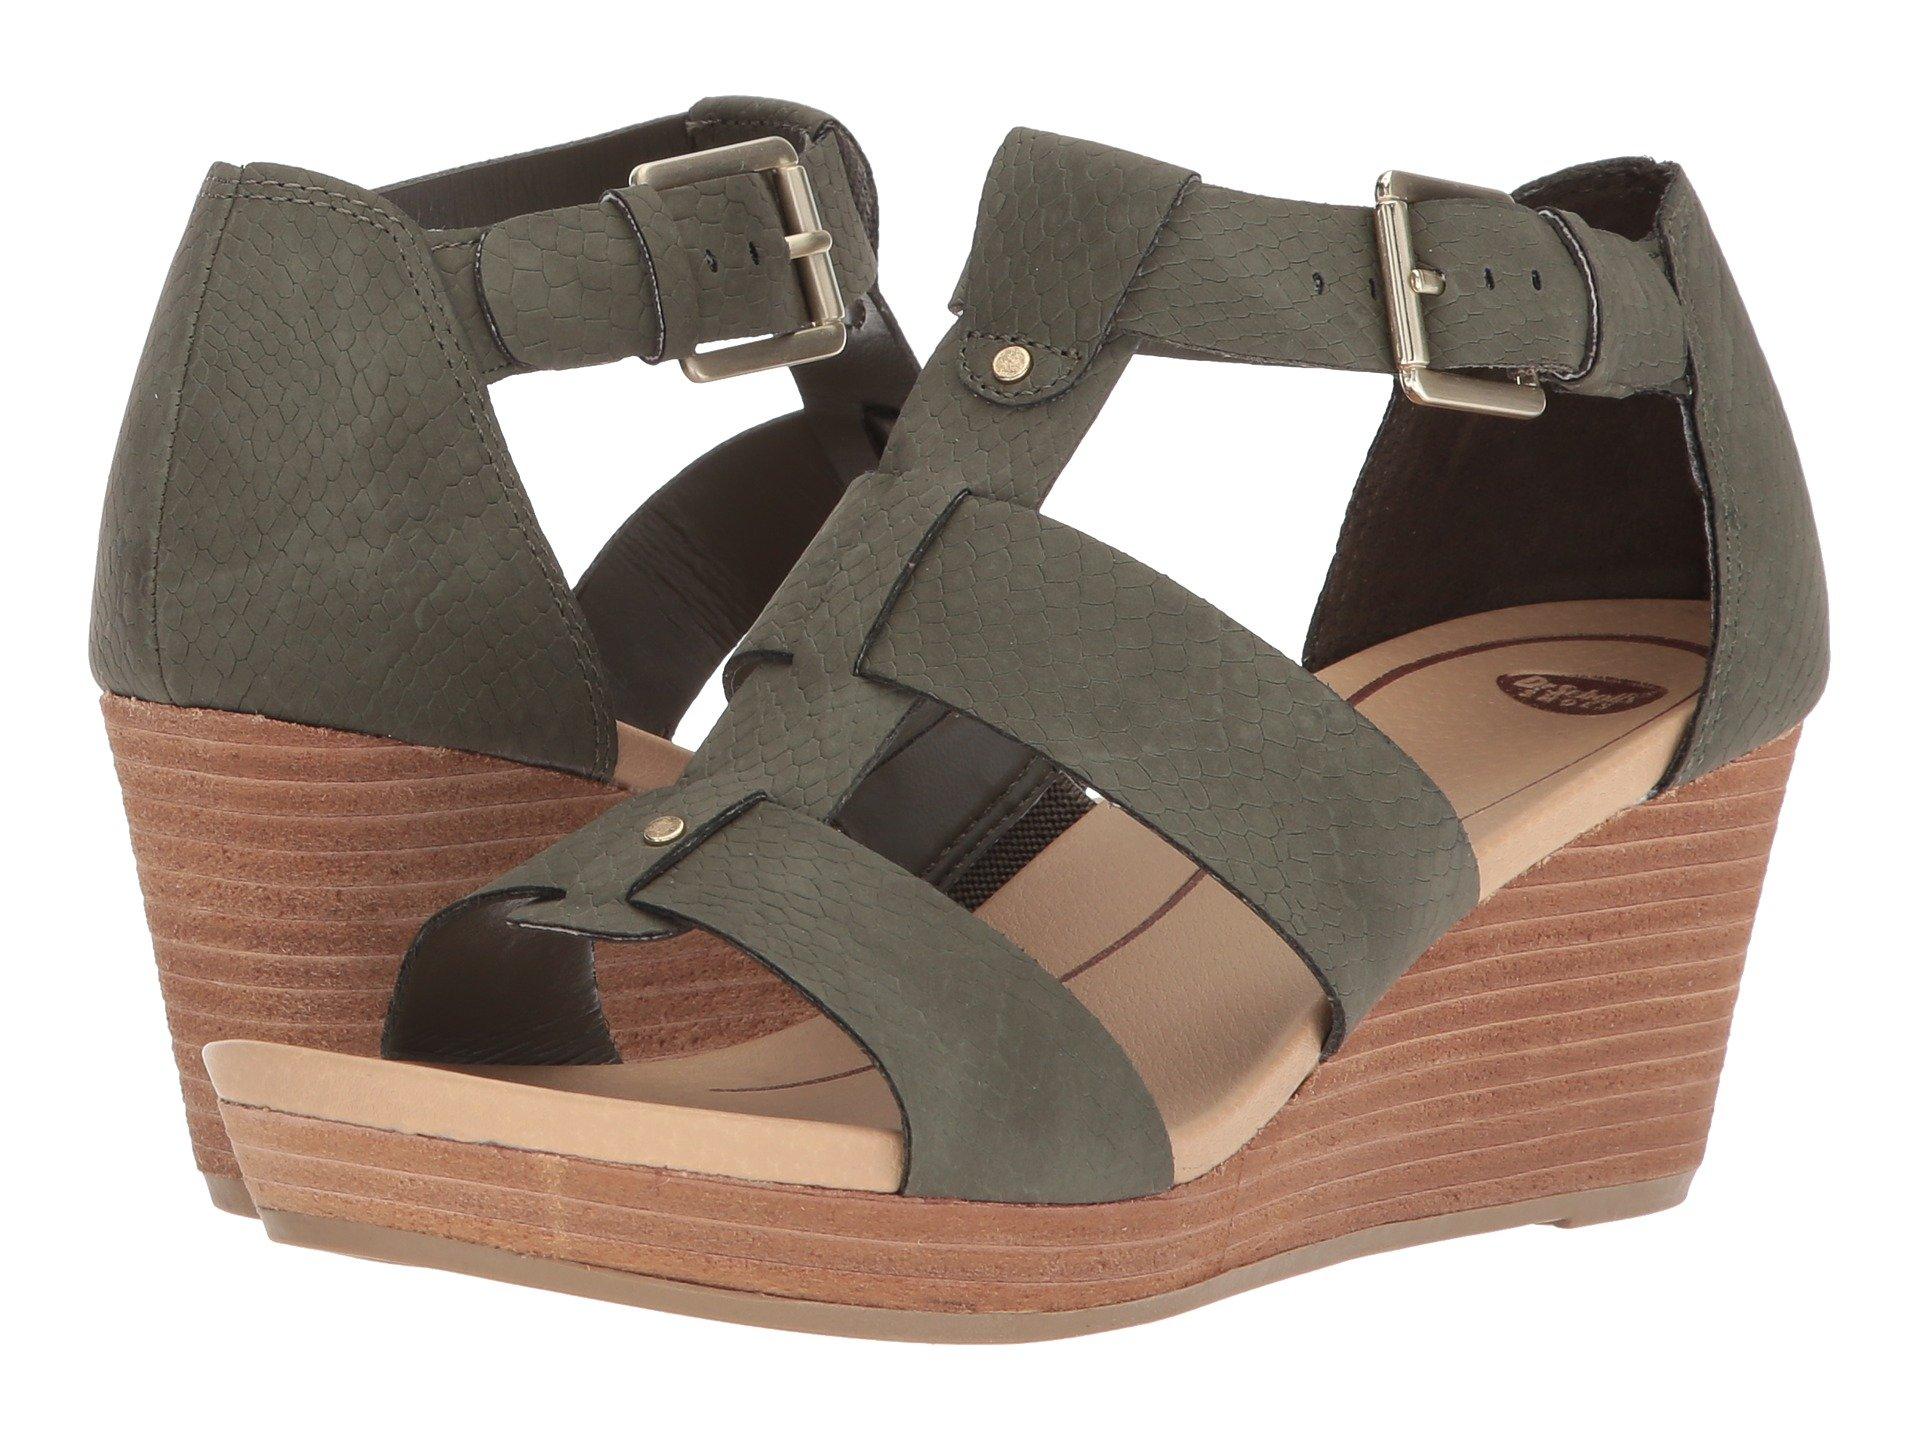 4807448e3c6 Women s Dr. Scholl s Sandals + FREE SHIPPING